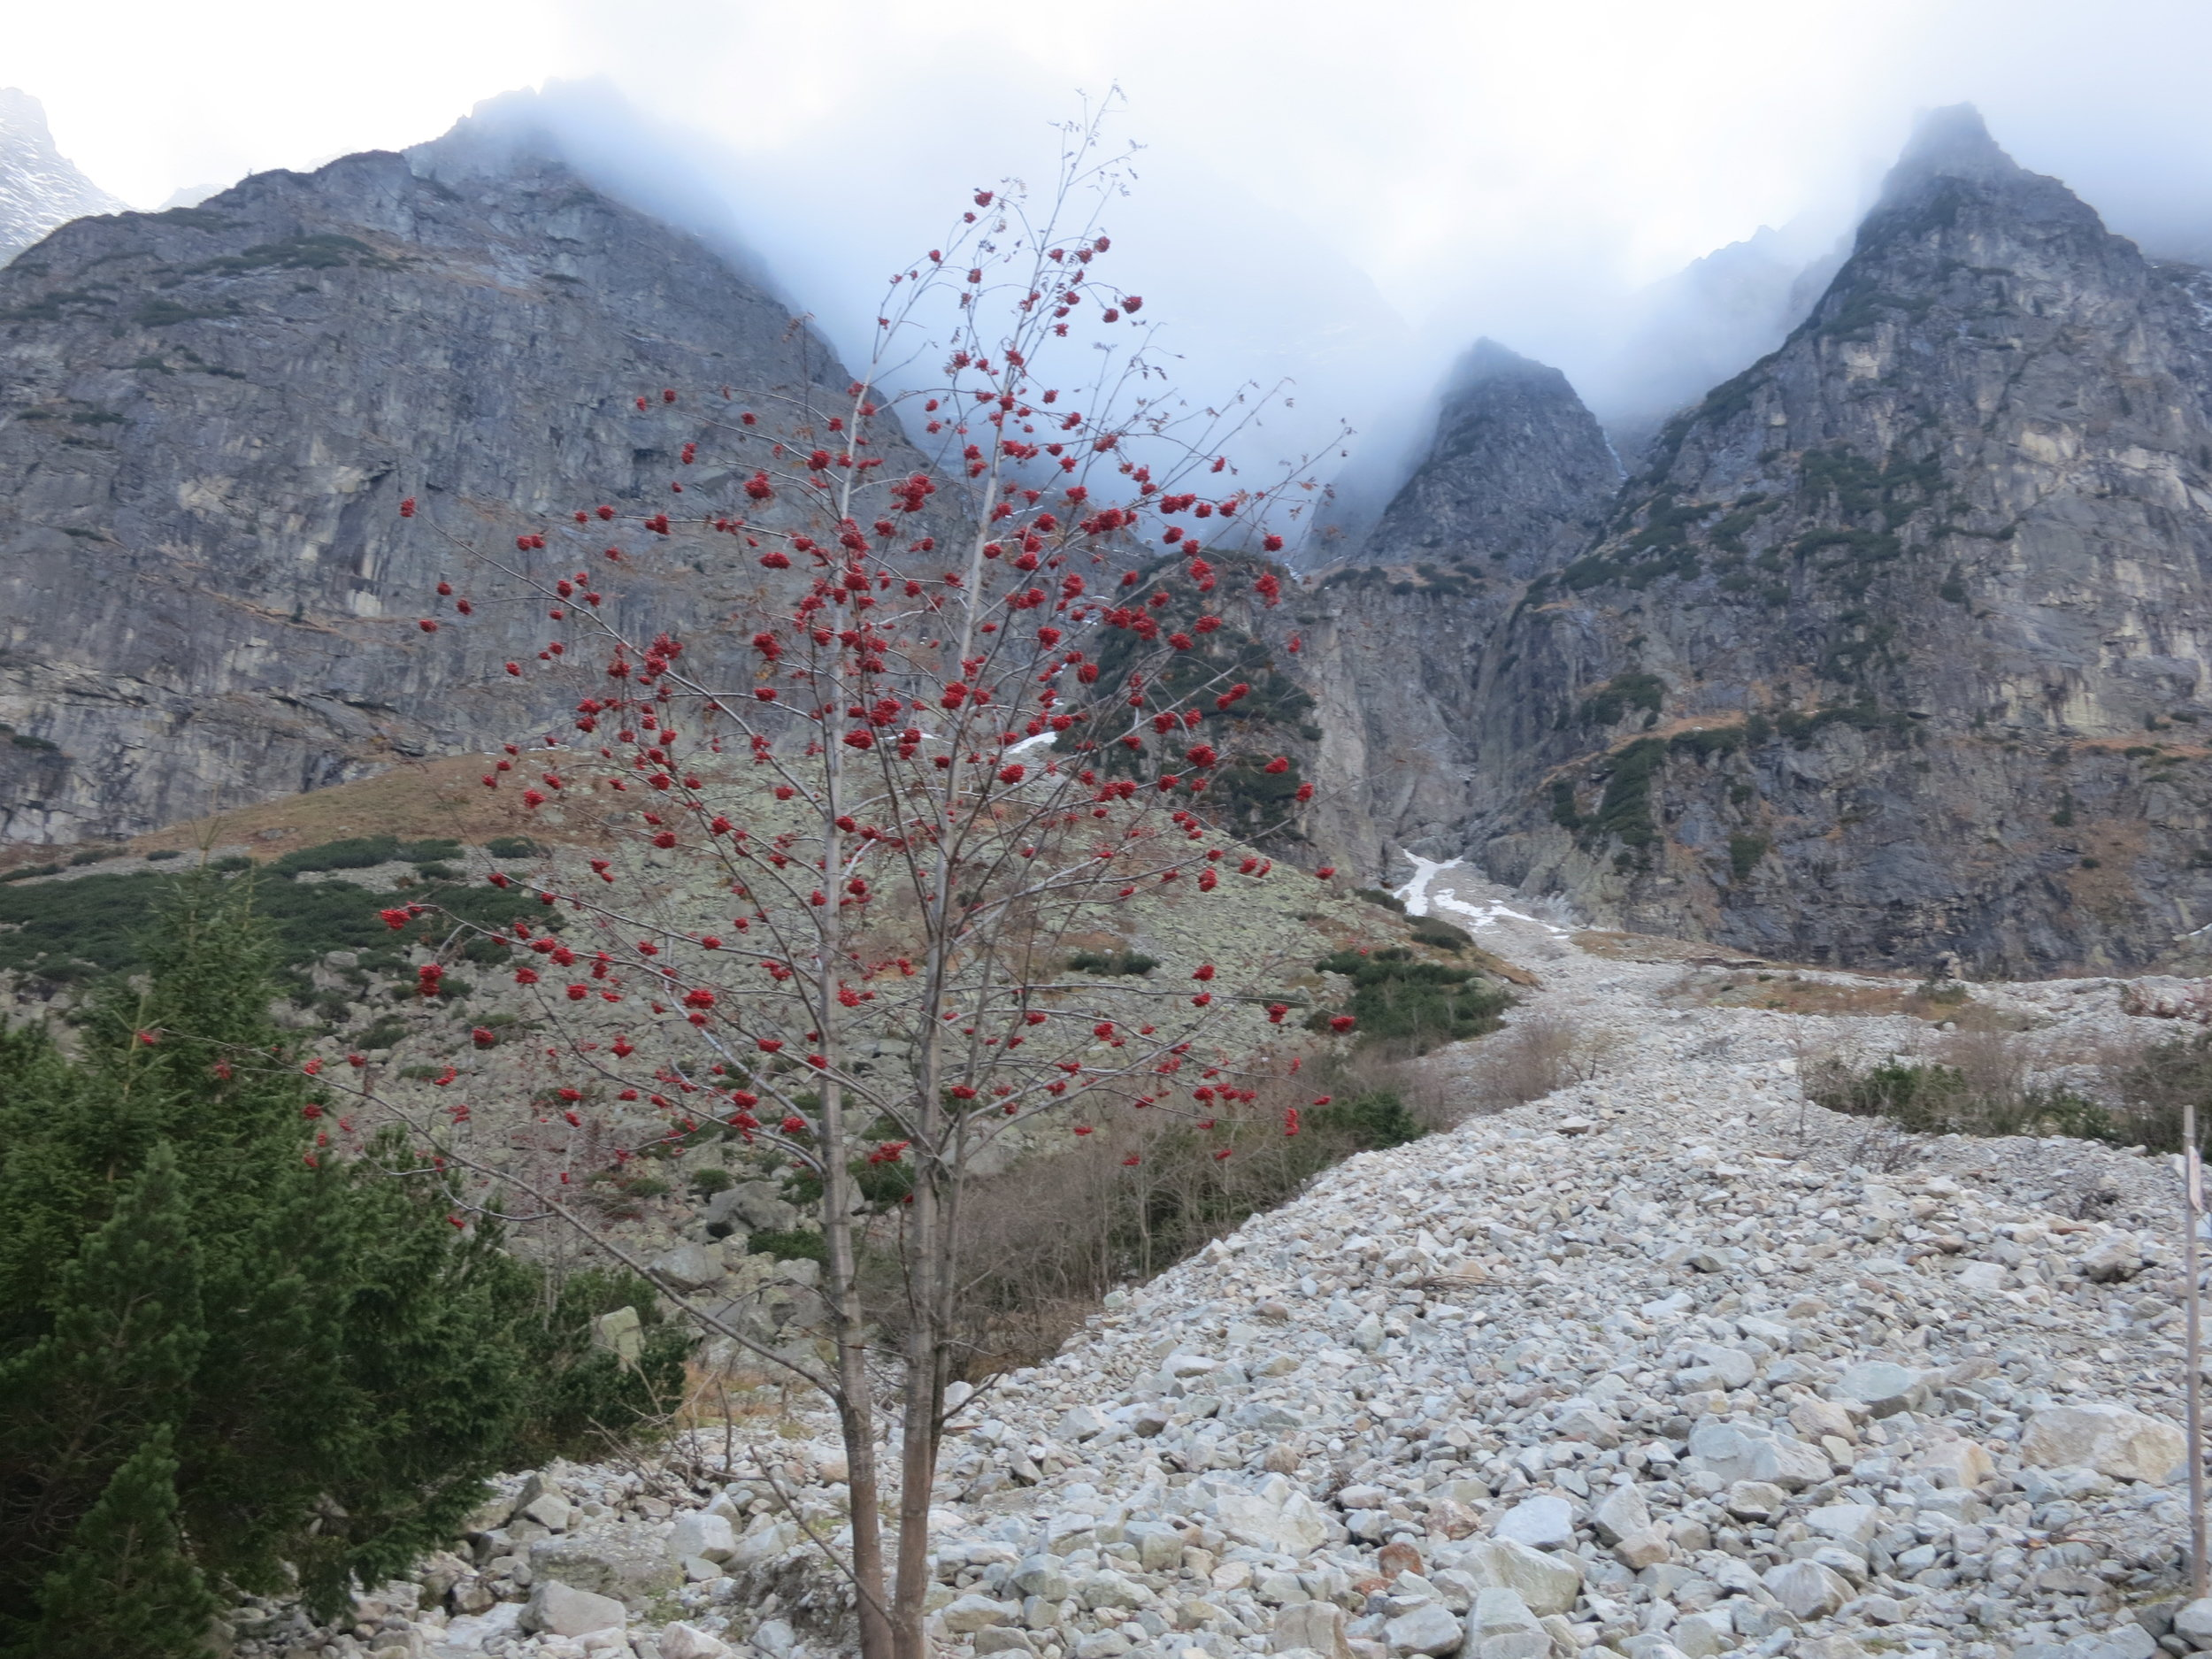 A tree with red berries in the Tatra Mountains